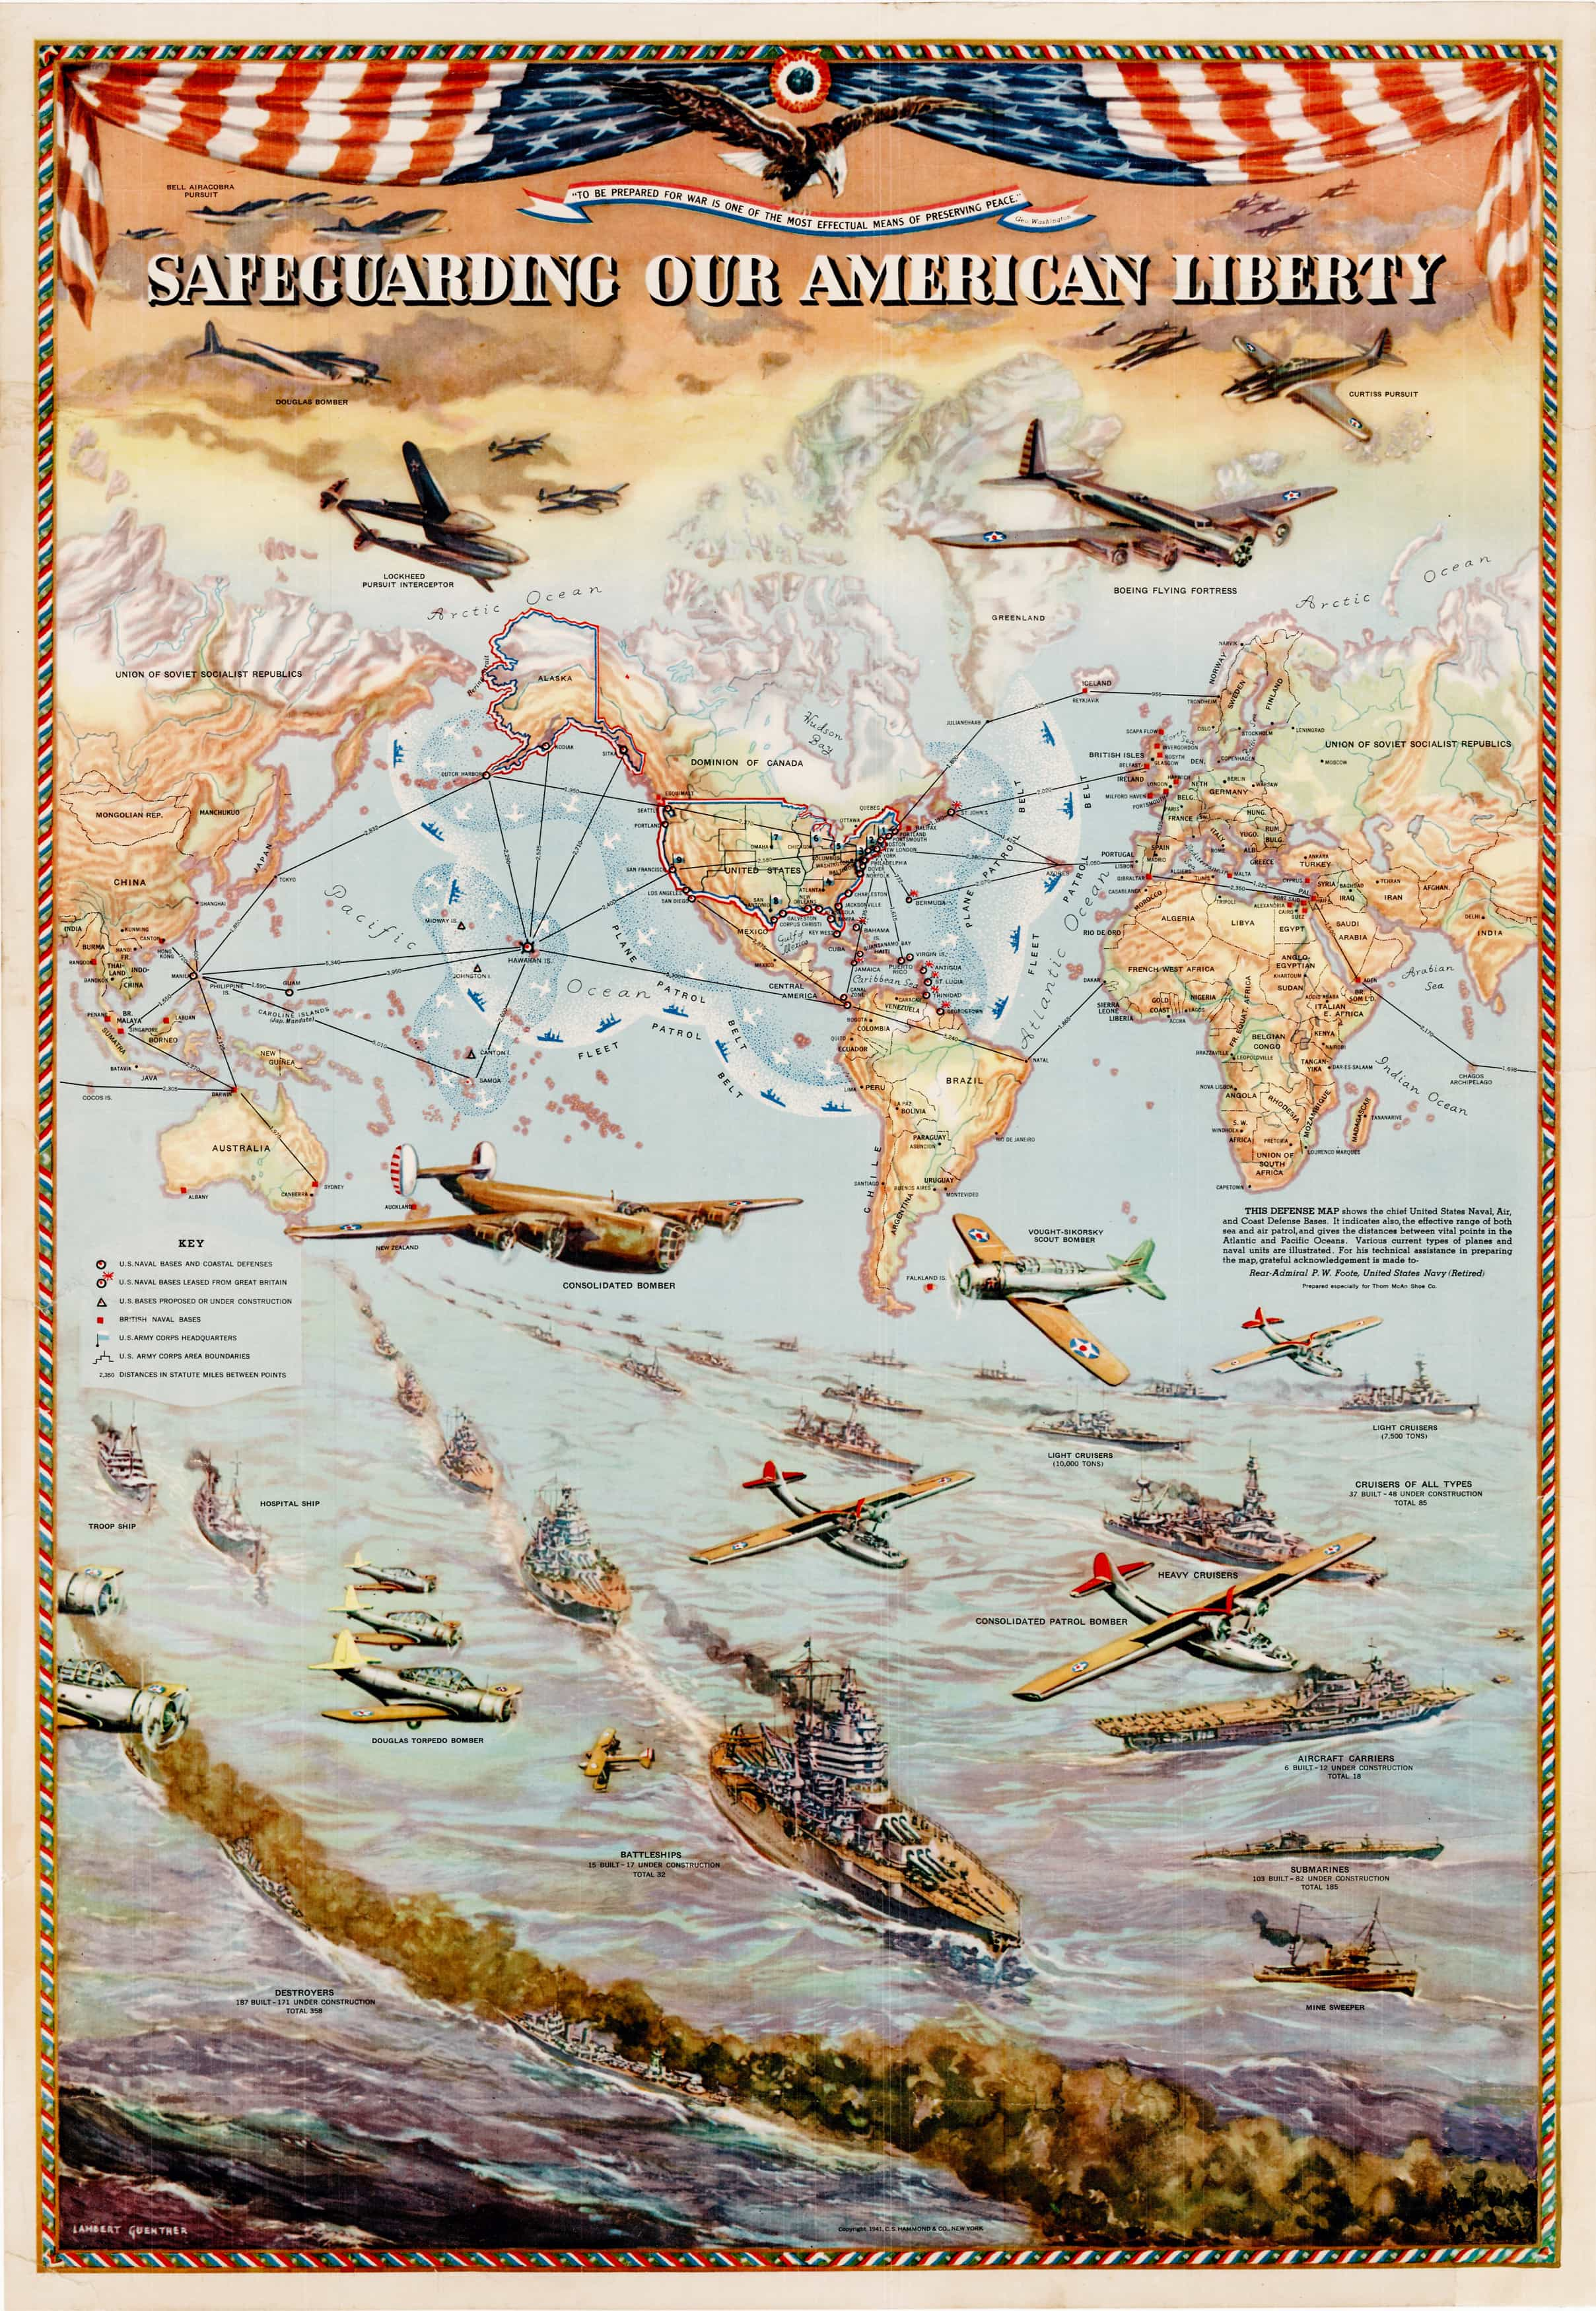 Pictorial Map Conveying American Military Might On The Eve